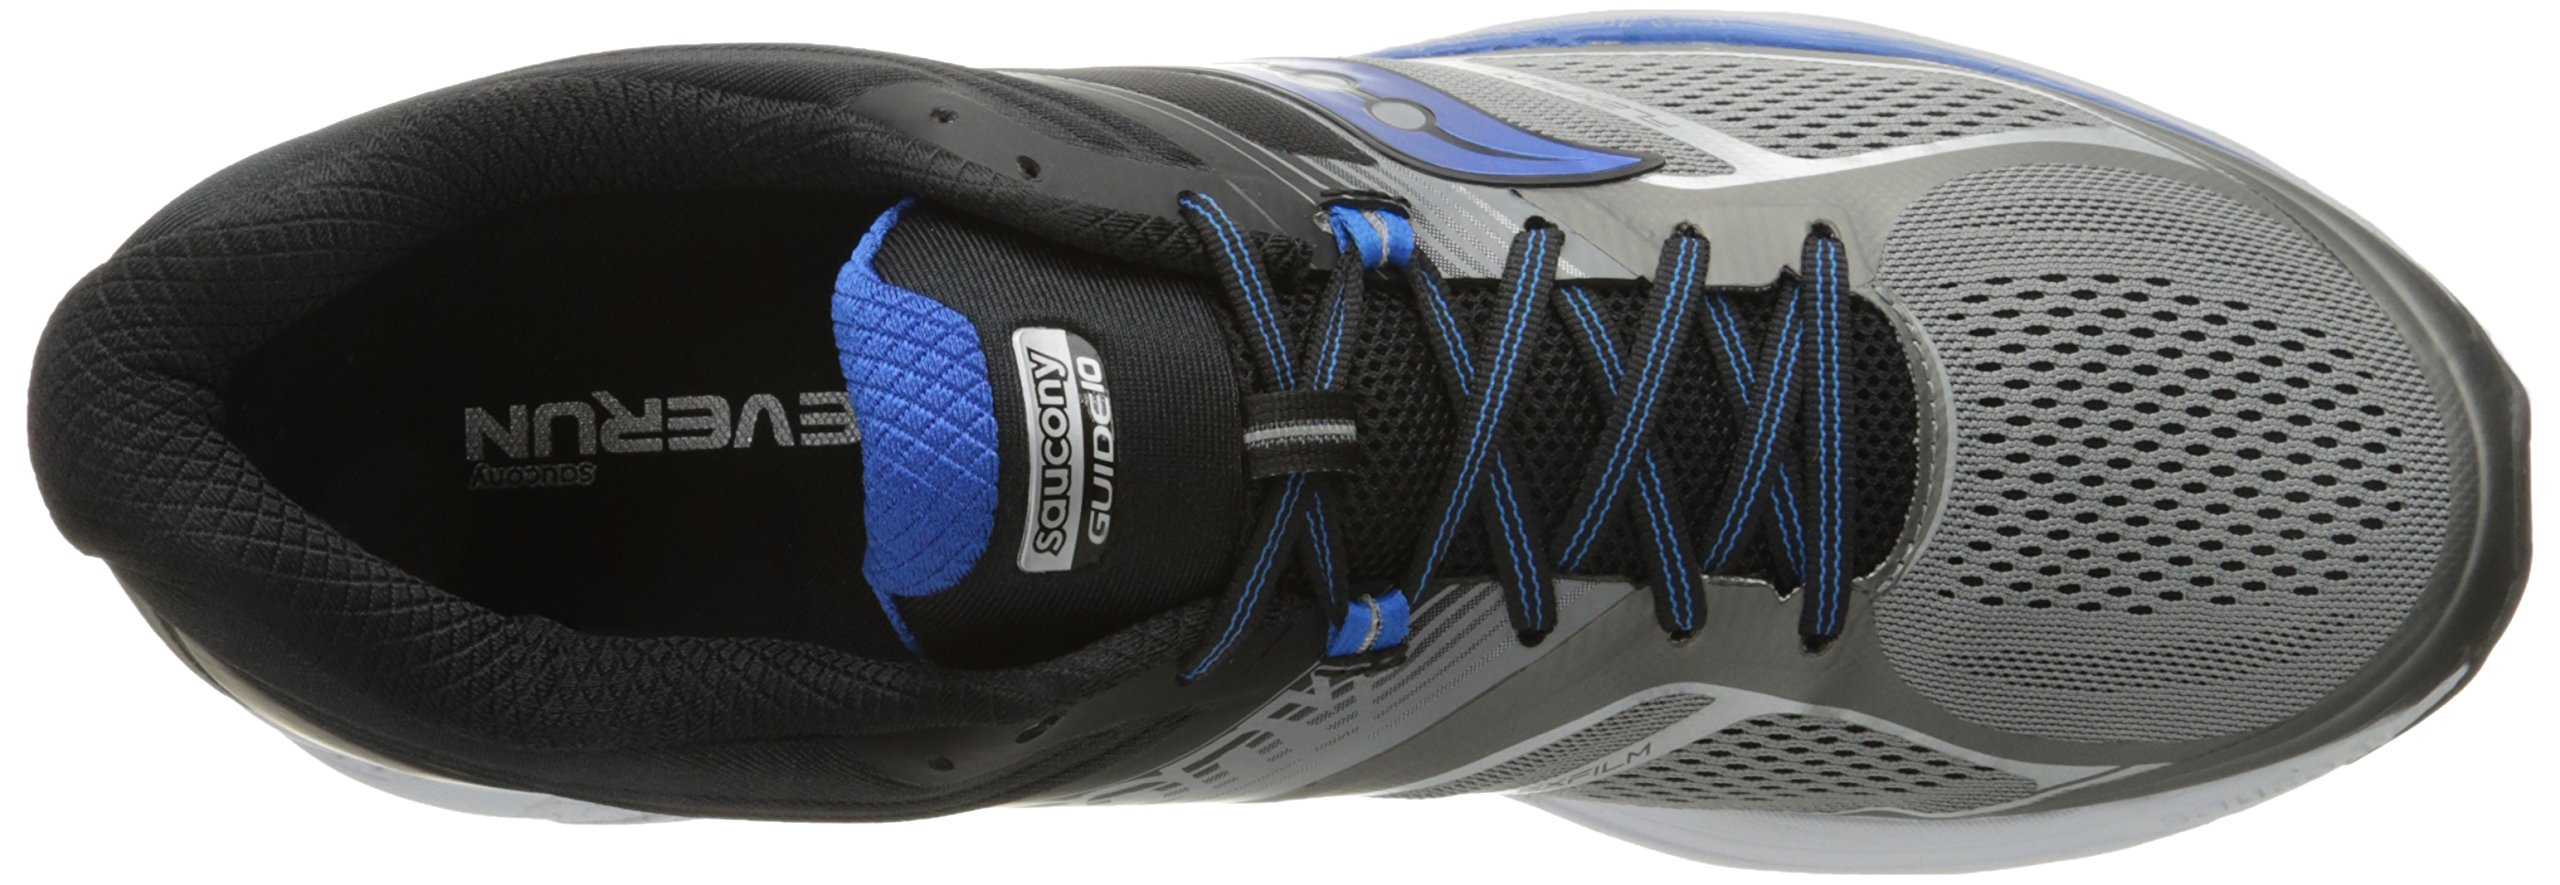 Saucony Men's Guide 10 Running Shoes, Grey Black, 14 D(M) US by Saucony (Image #9)